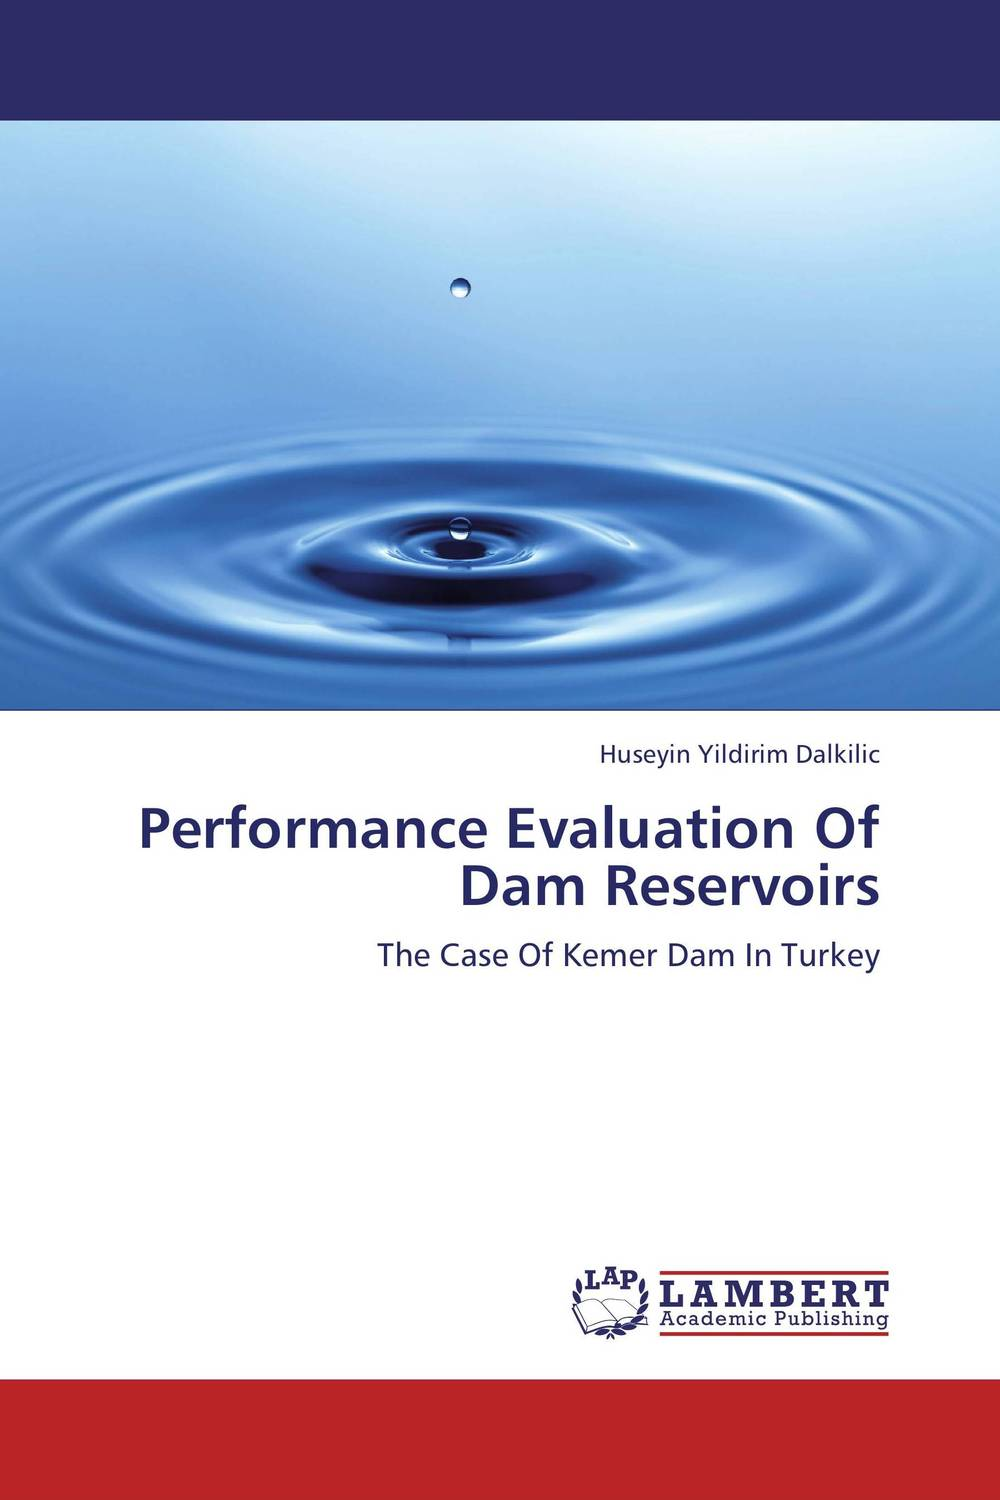 Performance Evaluation Of Dam Reservoirs optimal capacity design and performance evaluation